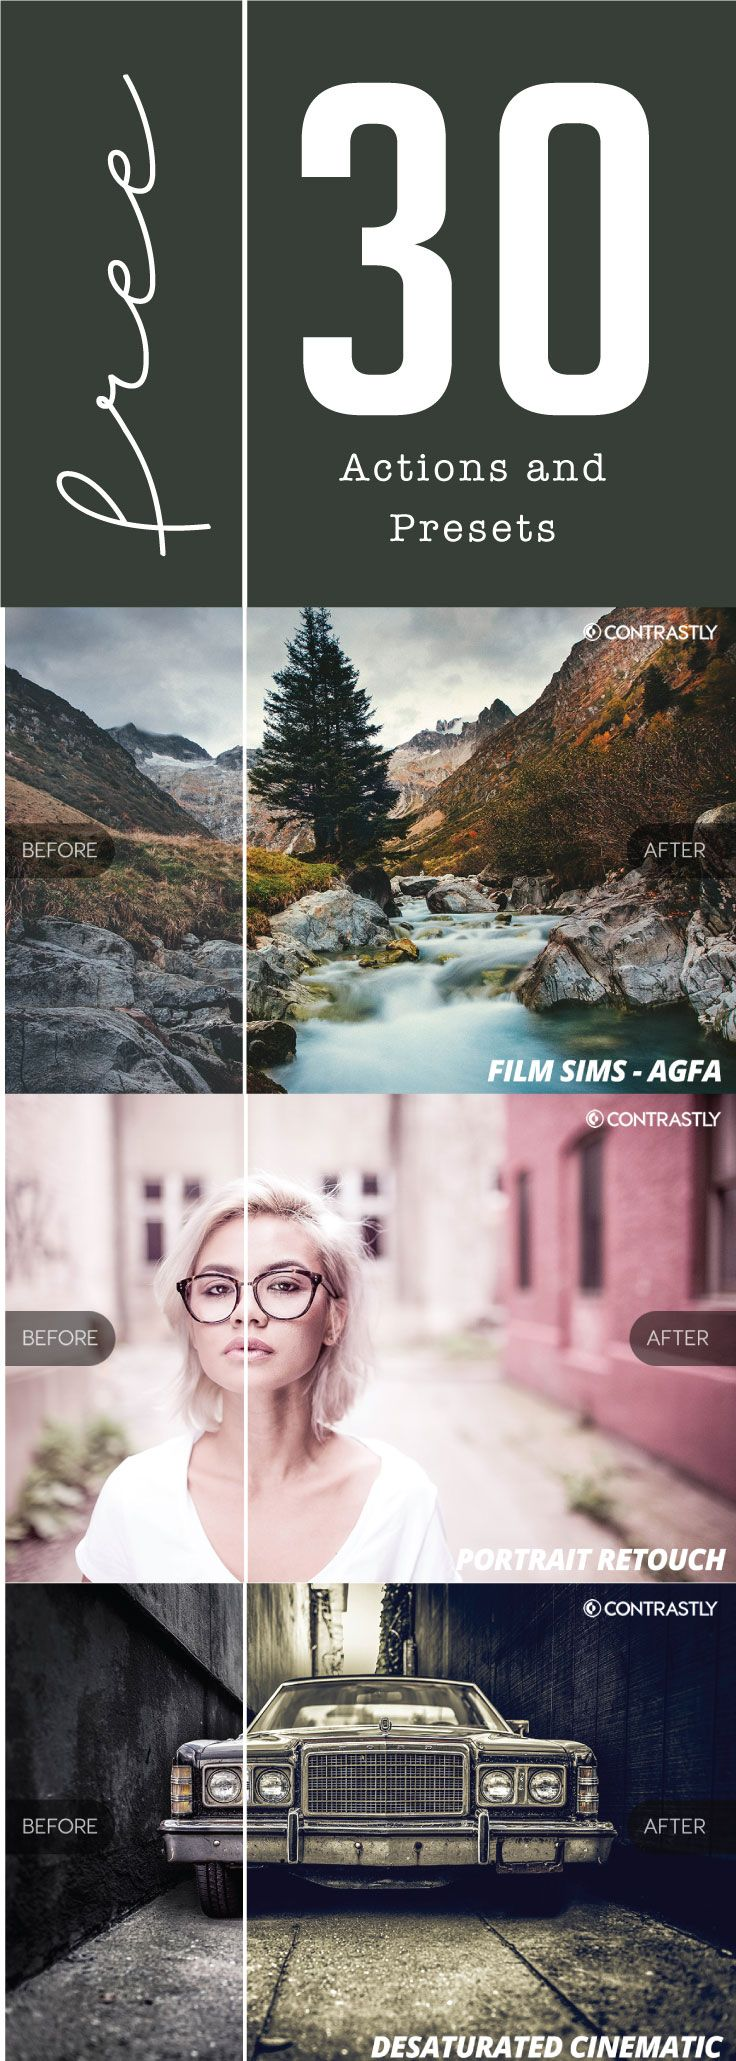 30 FreeActions and Presets from Contrastly Contrastly has packaged together 30 free actions and presetsfrom their premium packages into one amazing sample download exclusively for their email subscribers. This package includes 25 of their premium Lightroom presets and 5 Photoshop actions to give you a preview of the best of what Contrastly has to offer....Read More »